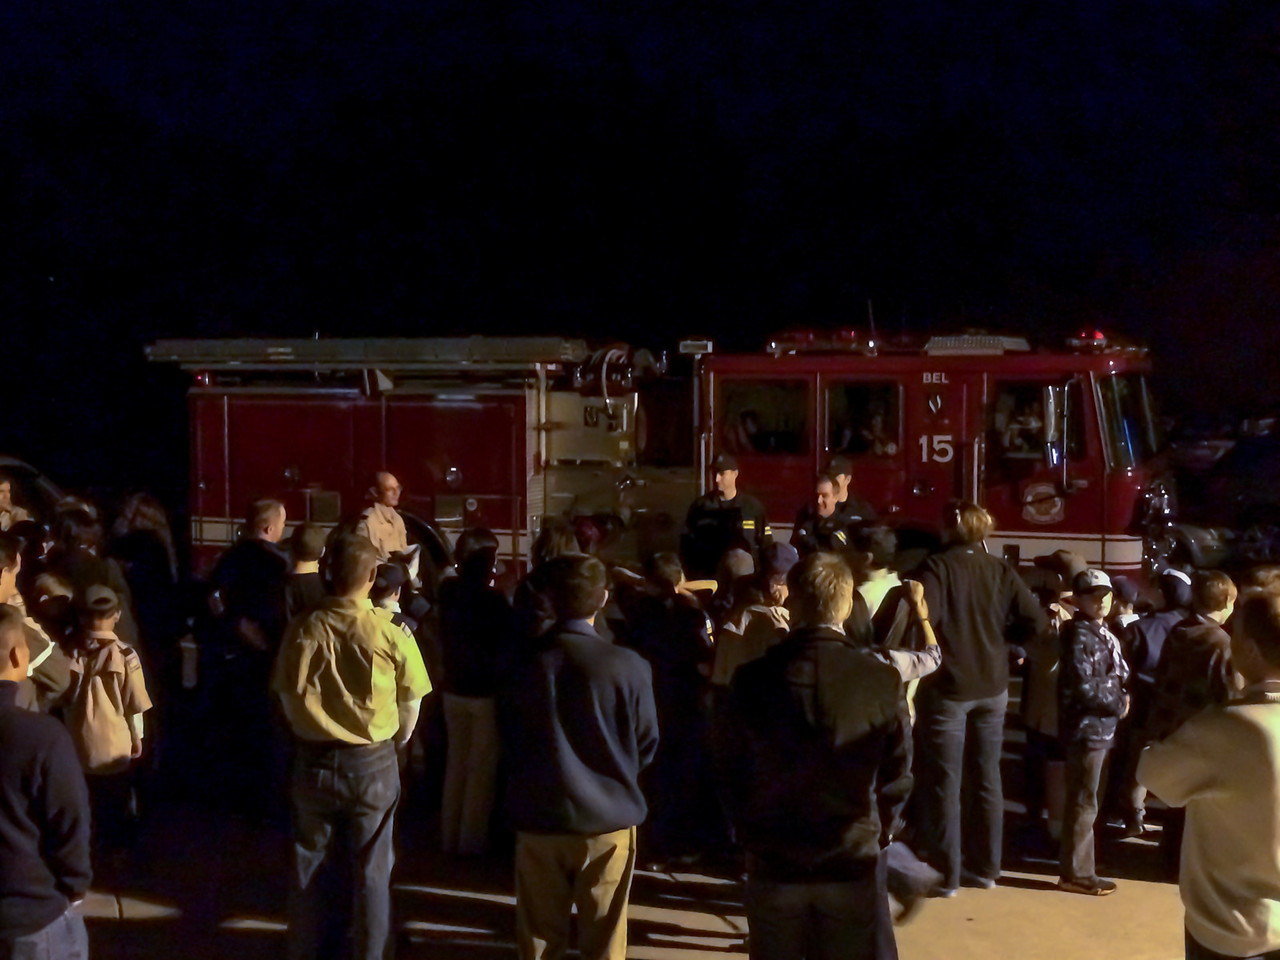 Day 351/1447 - Fire fighters came to the Pack meeting tonight gather our toy drive collection. It's great to see so much going back to our community.